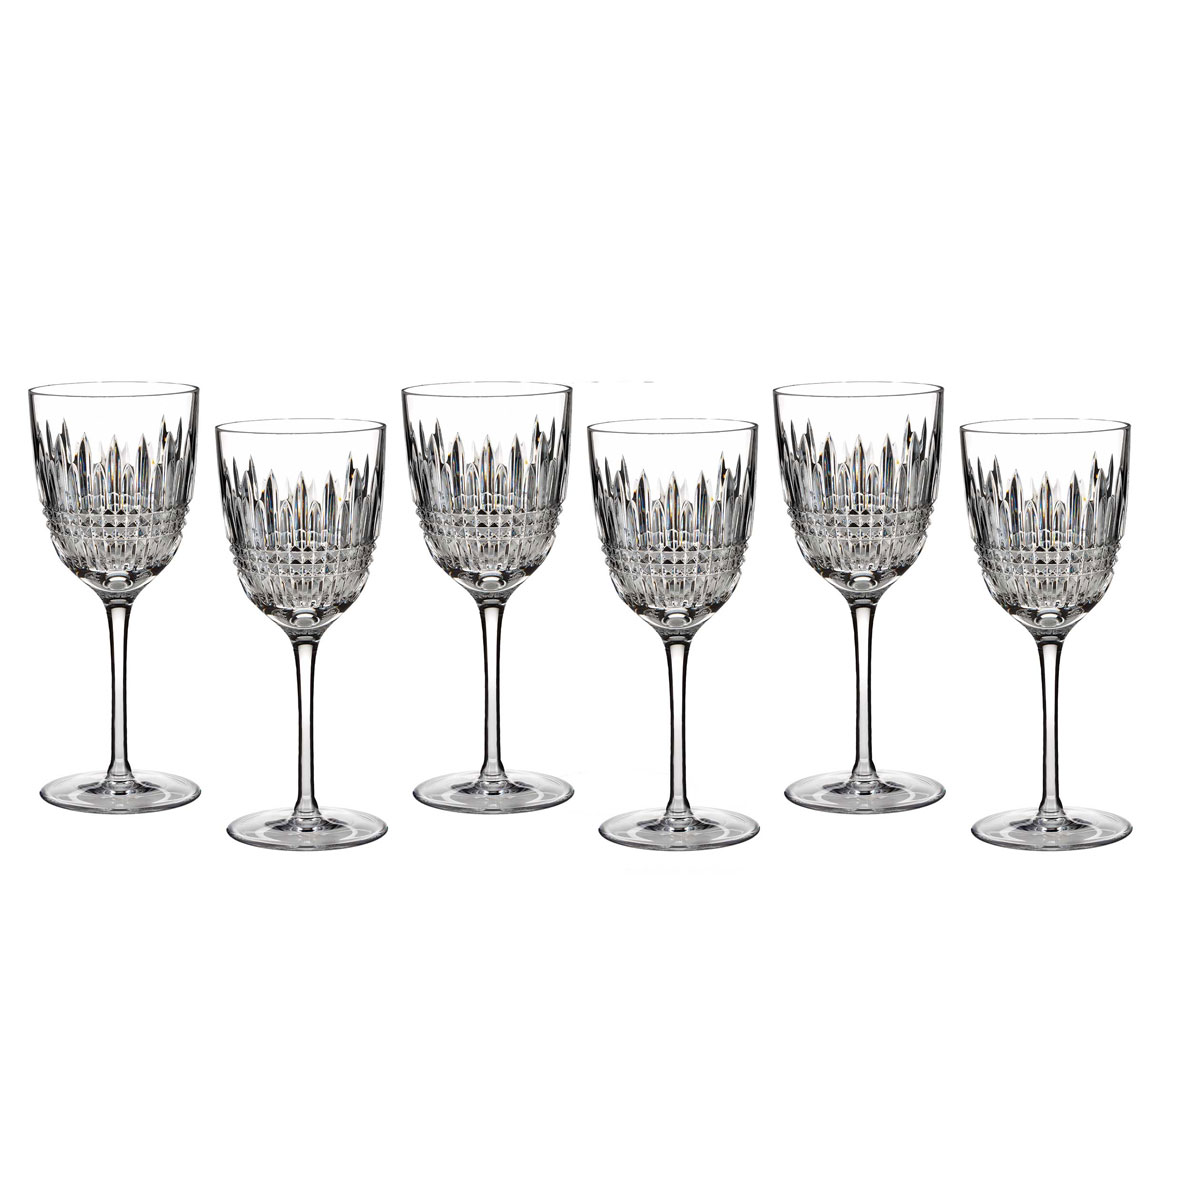 Waterford Crystal, Lismore Diamond Crystal Goblet, Boxed Set 5+1 Free